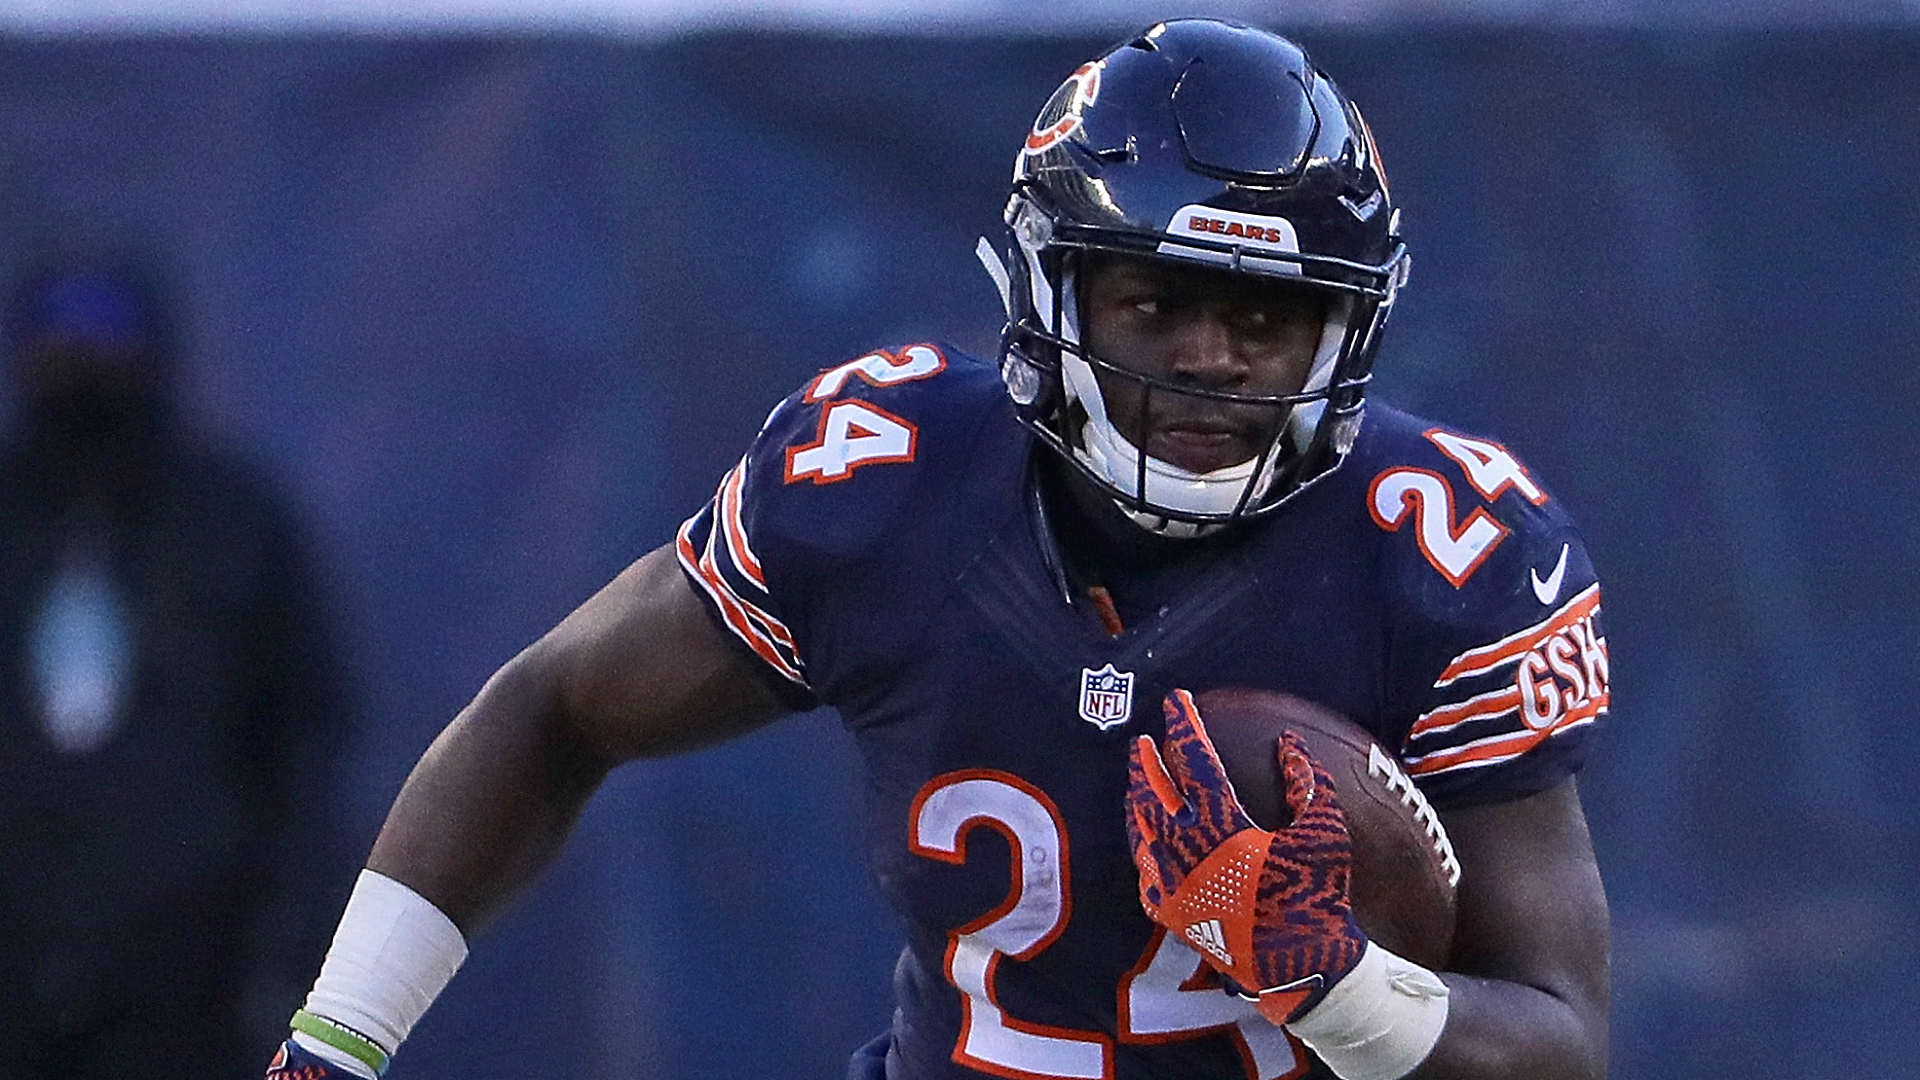 Bears open as obvious underdogs vs. Falcons in Week 1